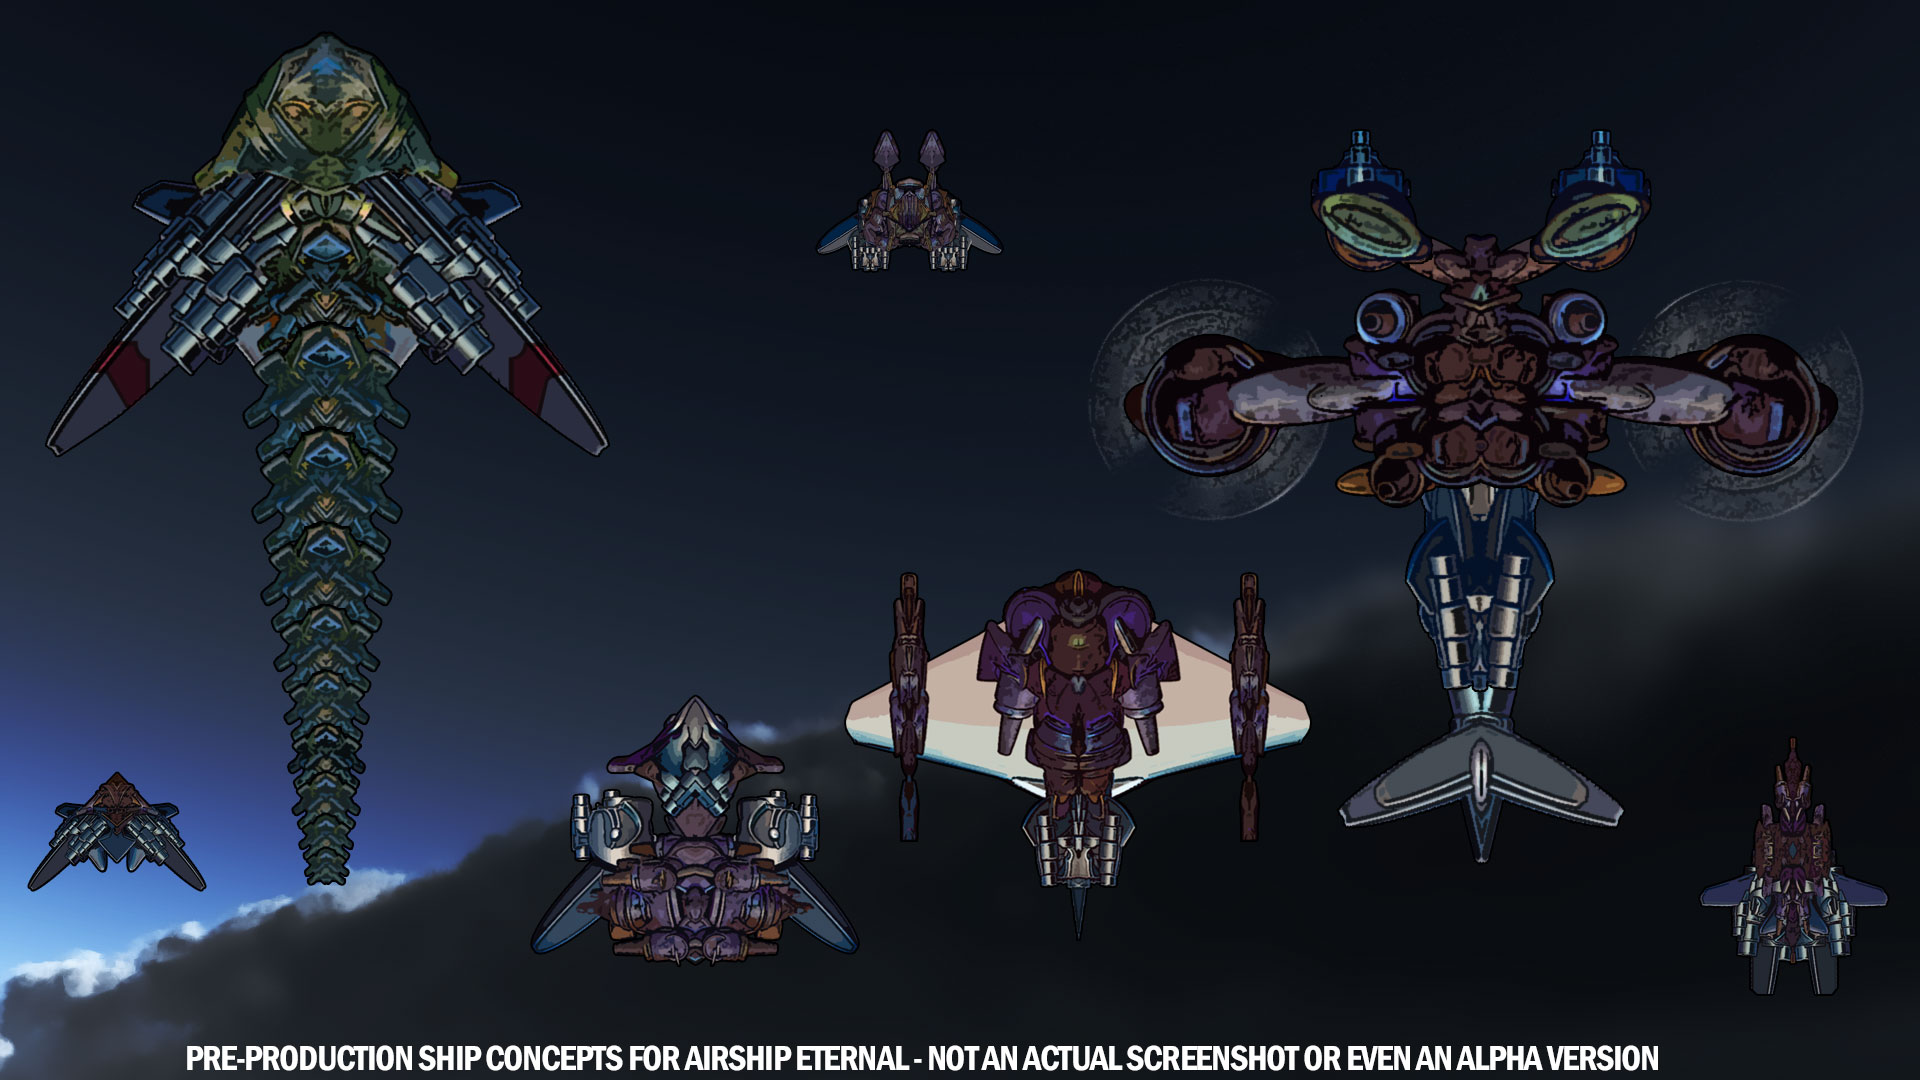 Airship Eternal – Concept Ships on bg from Skyward Collapse